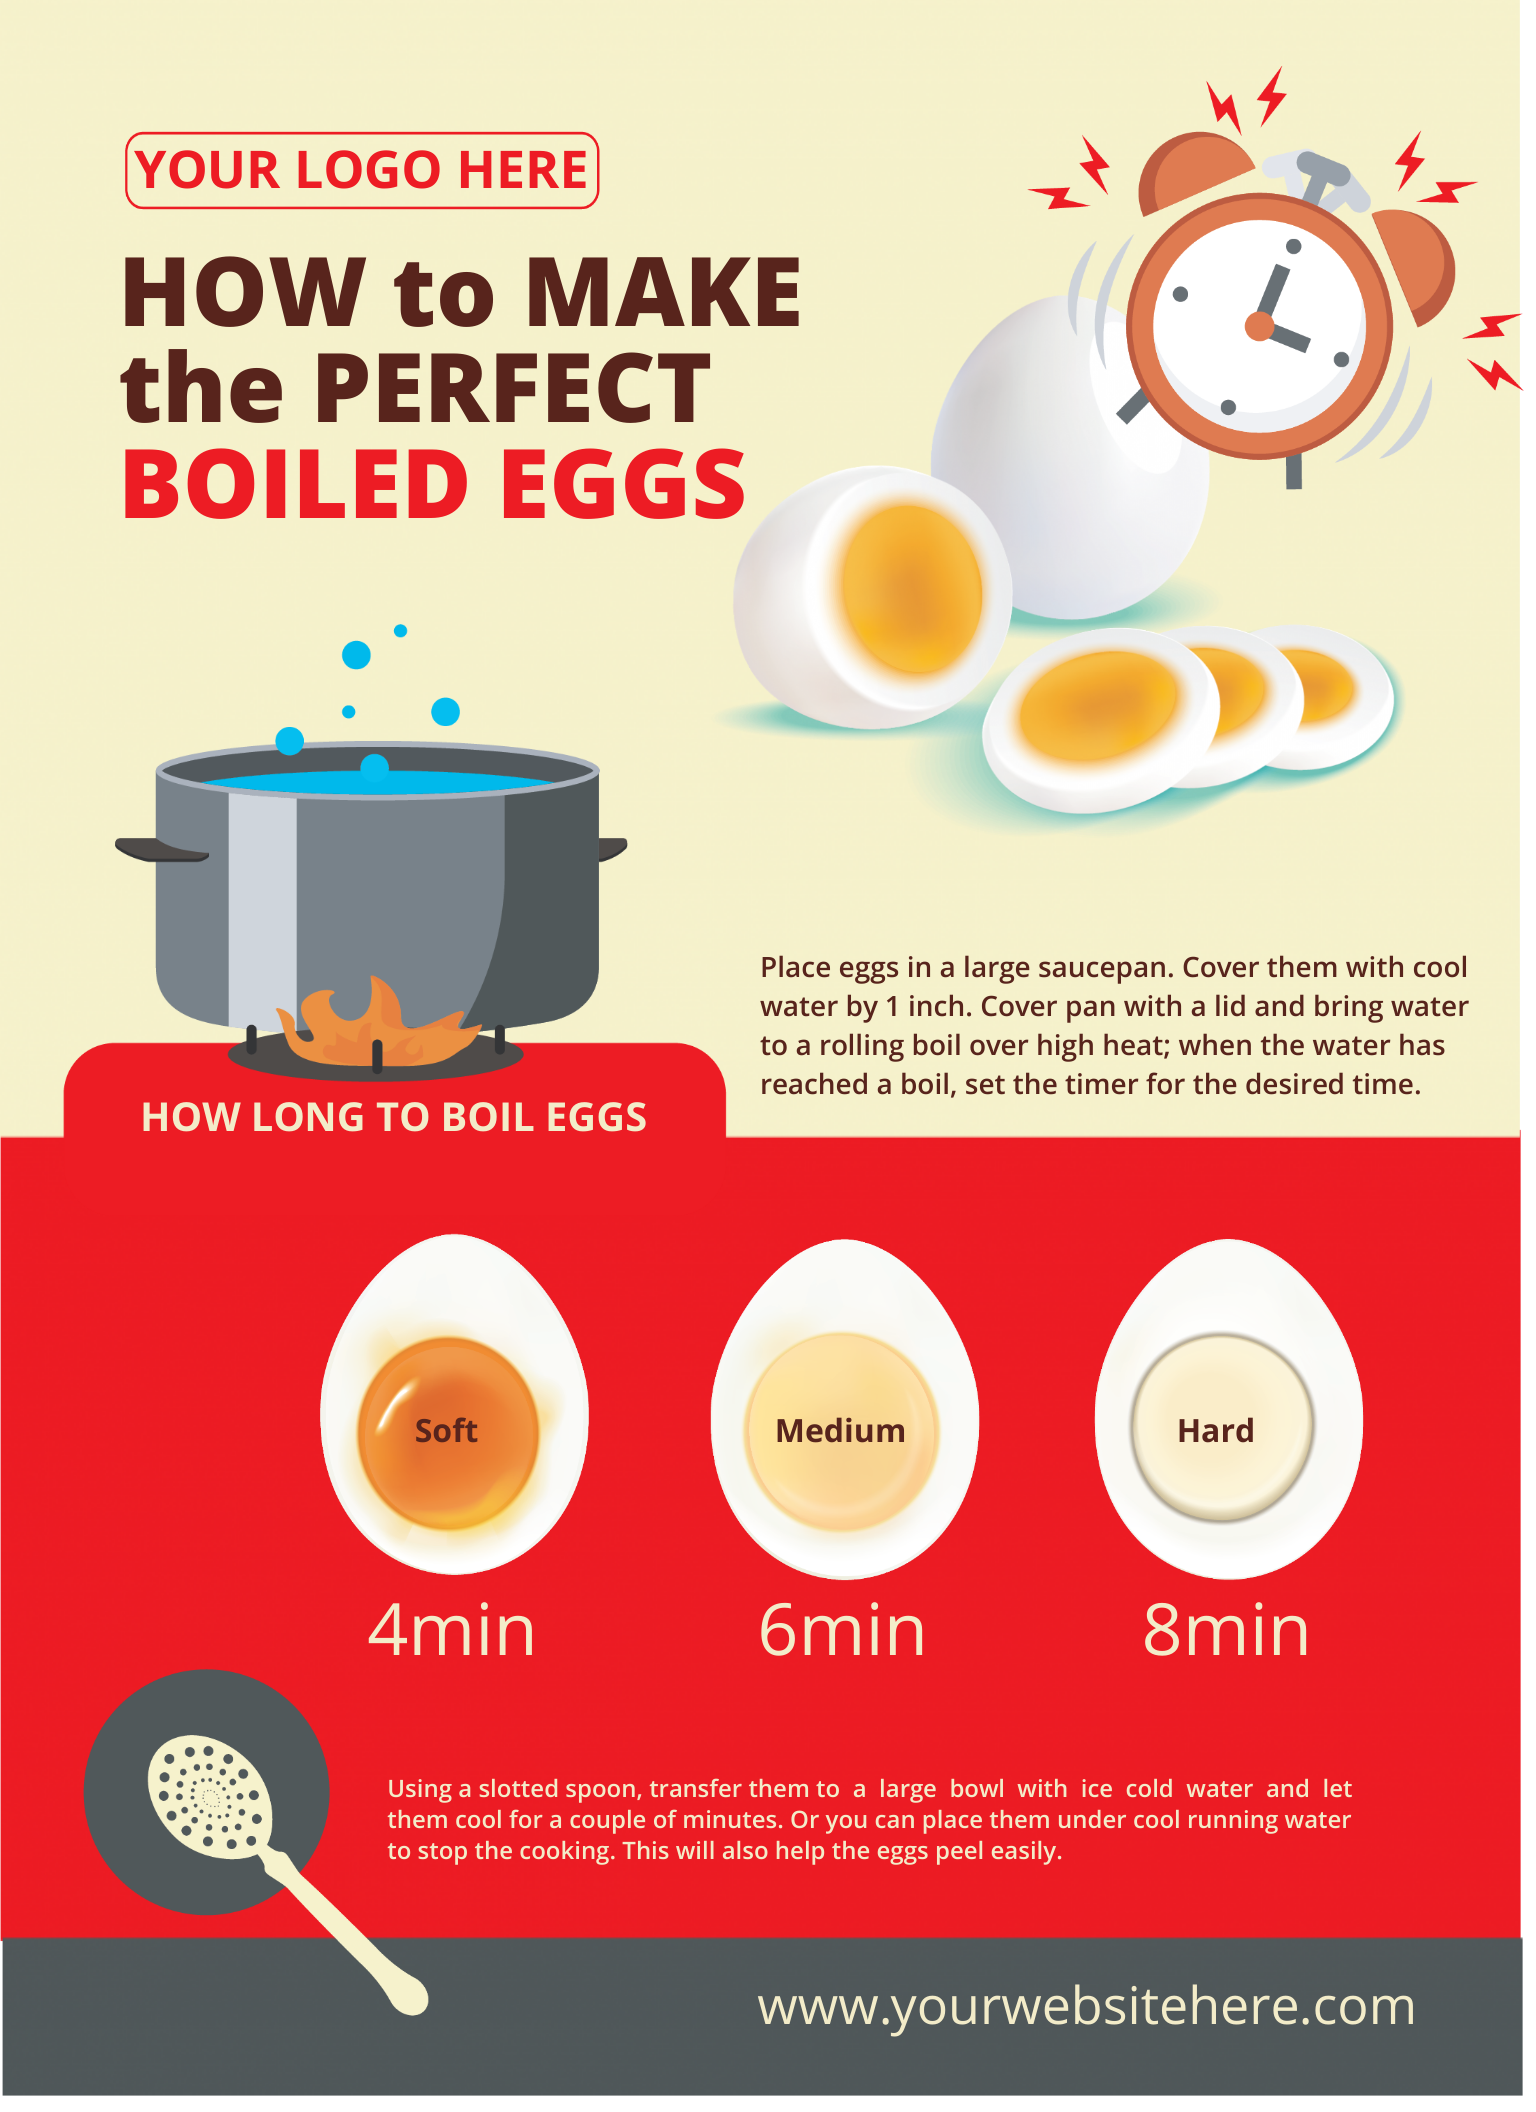 an infographic about making the perfect boiled eggs.